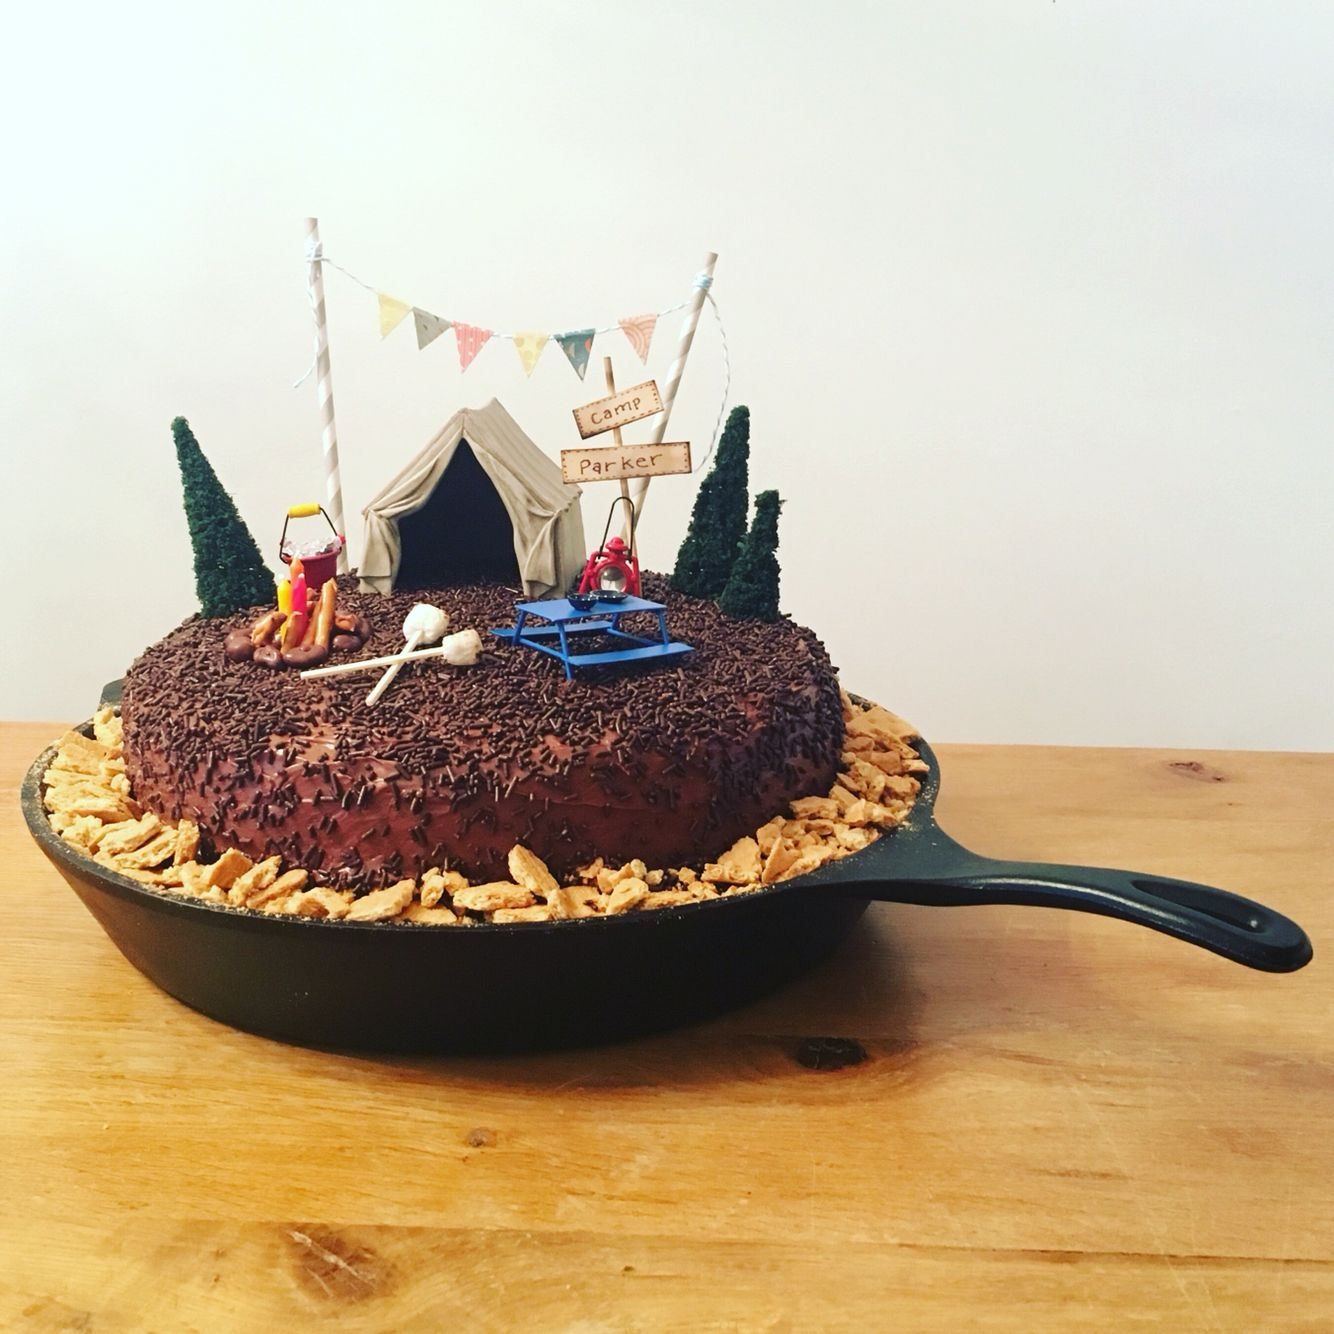 Camping Theme Birthday Cake In Cast Iron Skillet